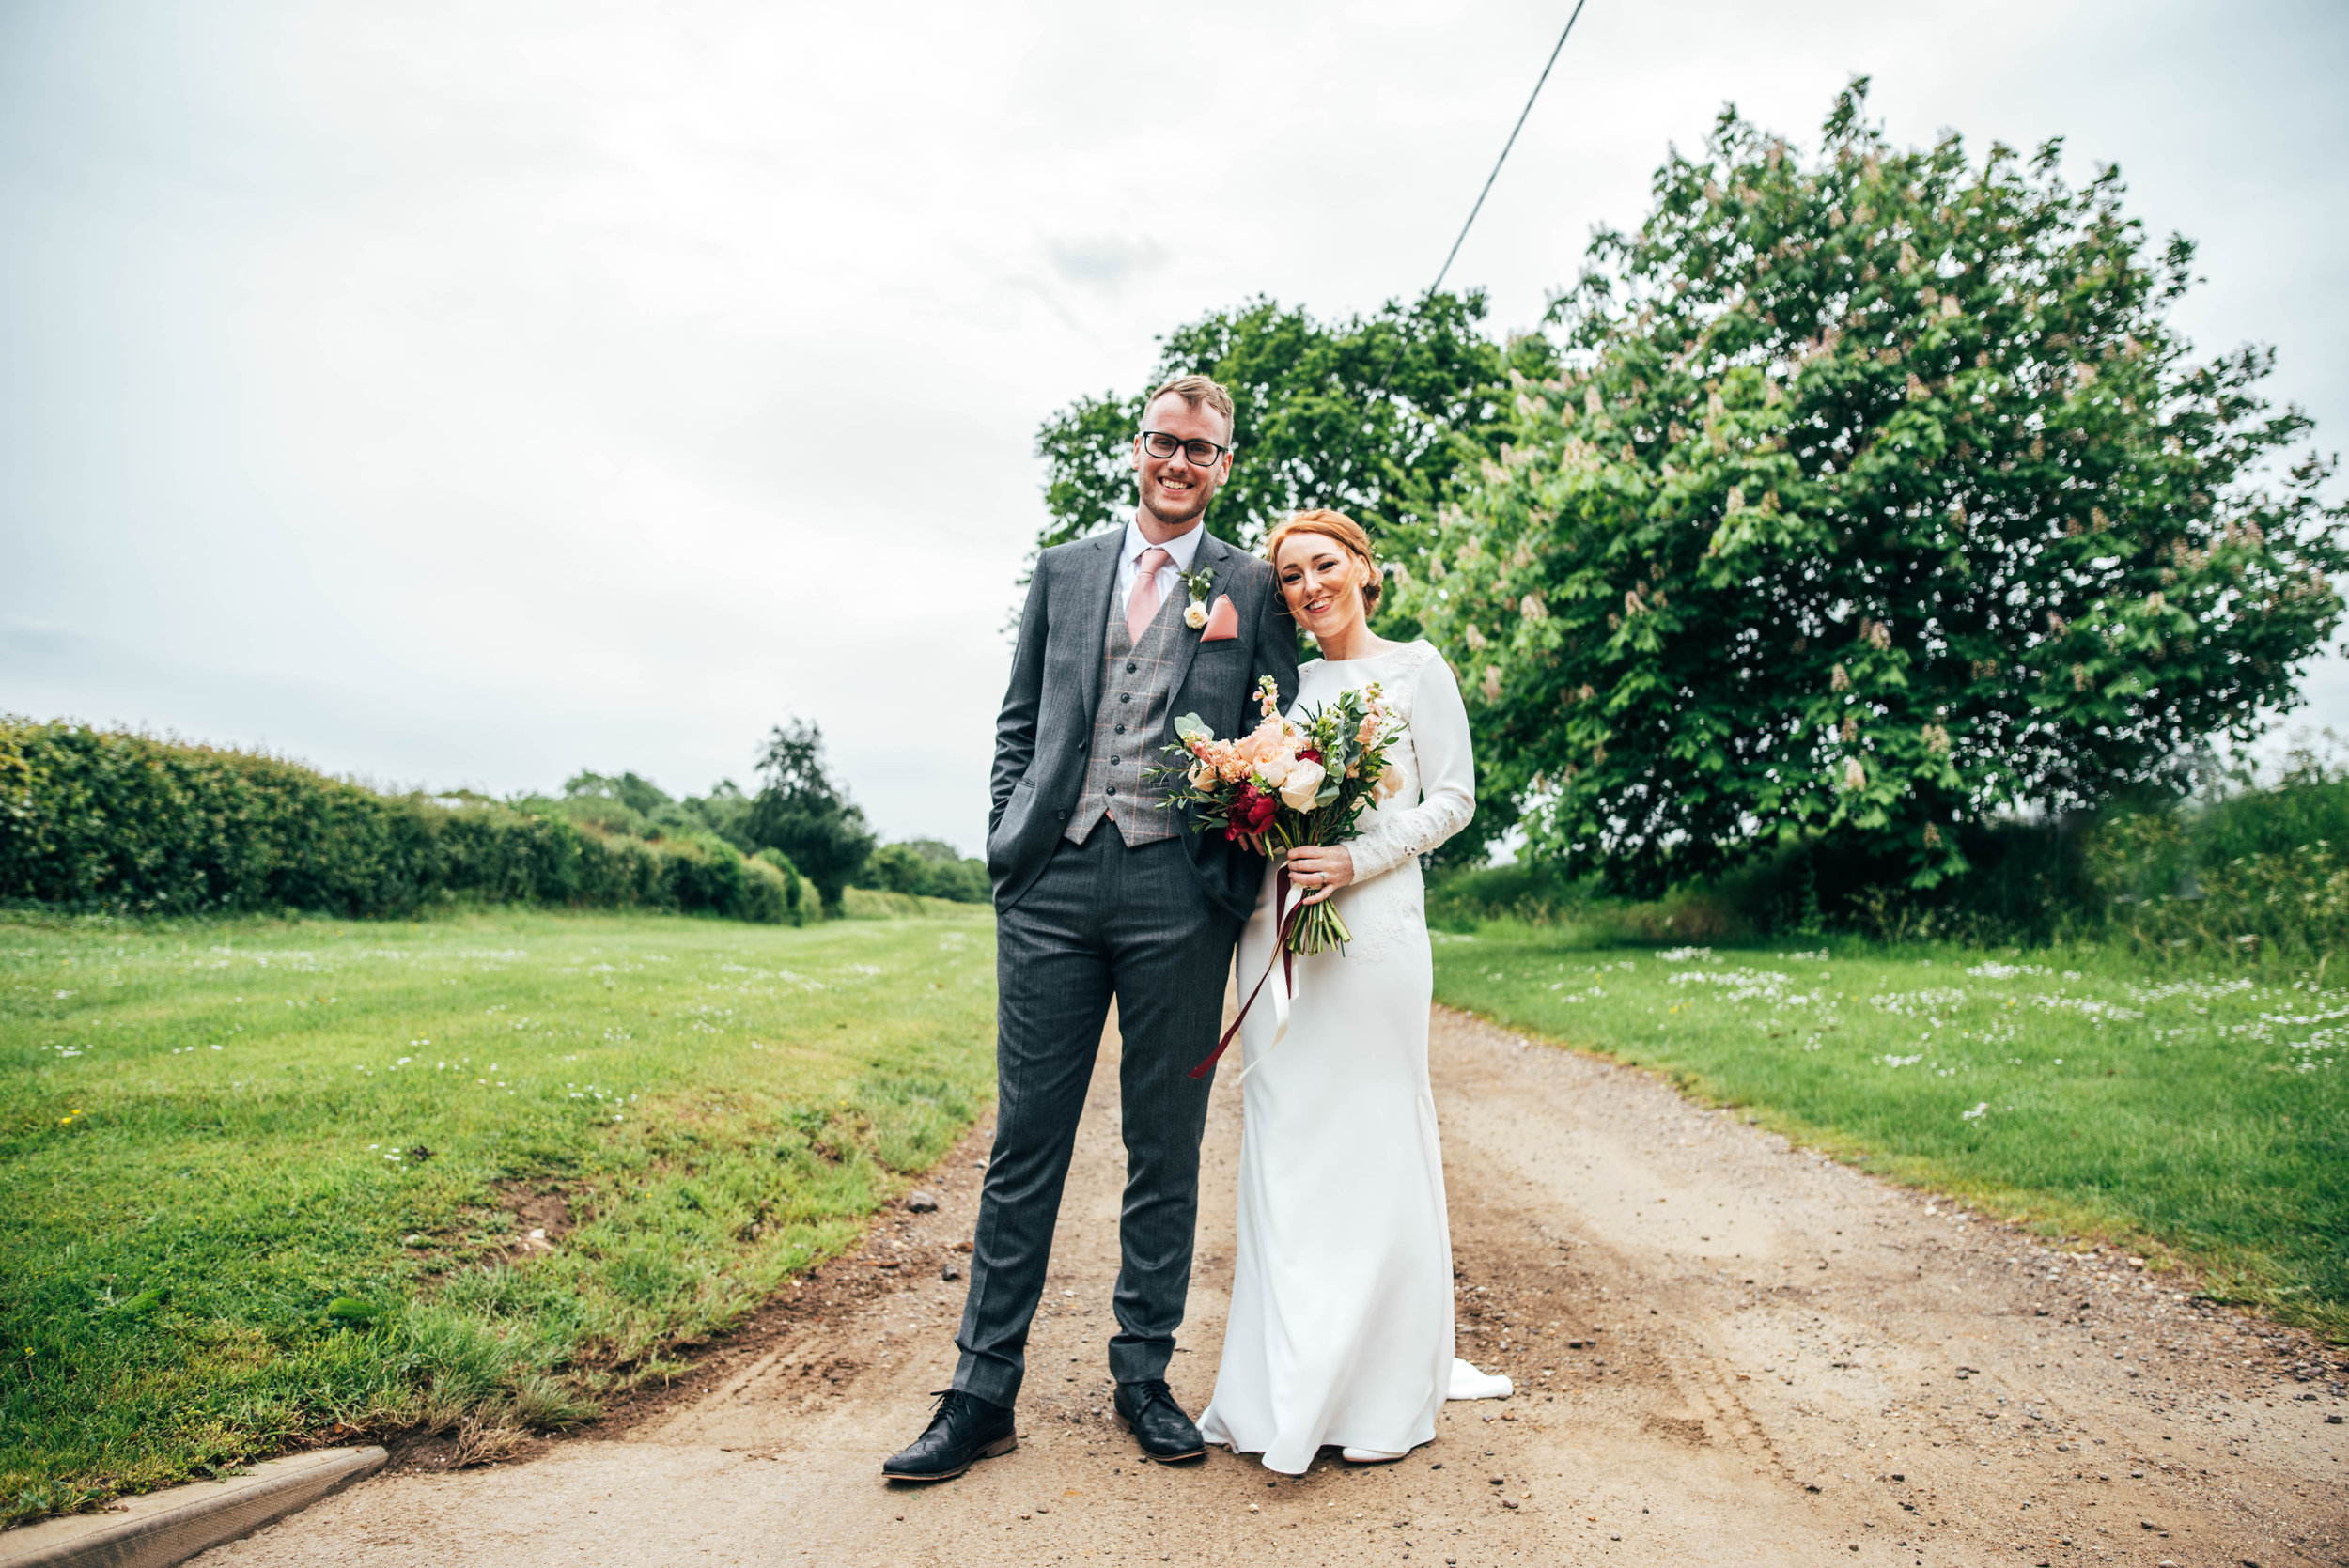 Intimate Wedding at Granary Estates with Gin inspired decor and lush Red Peonies